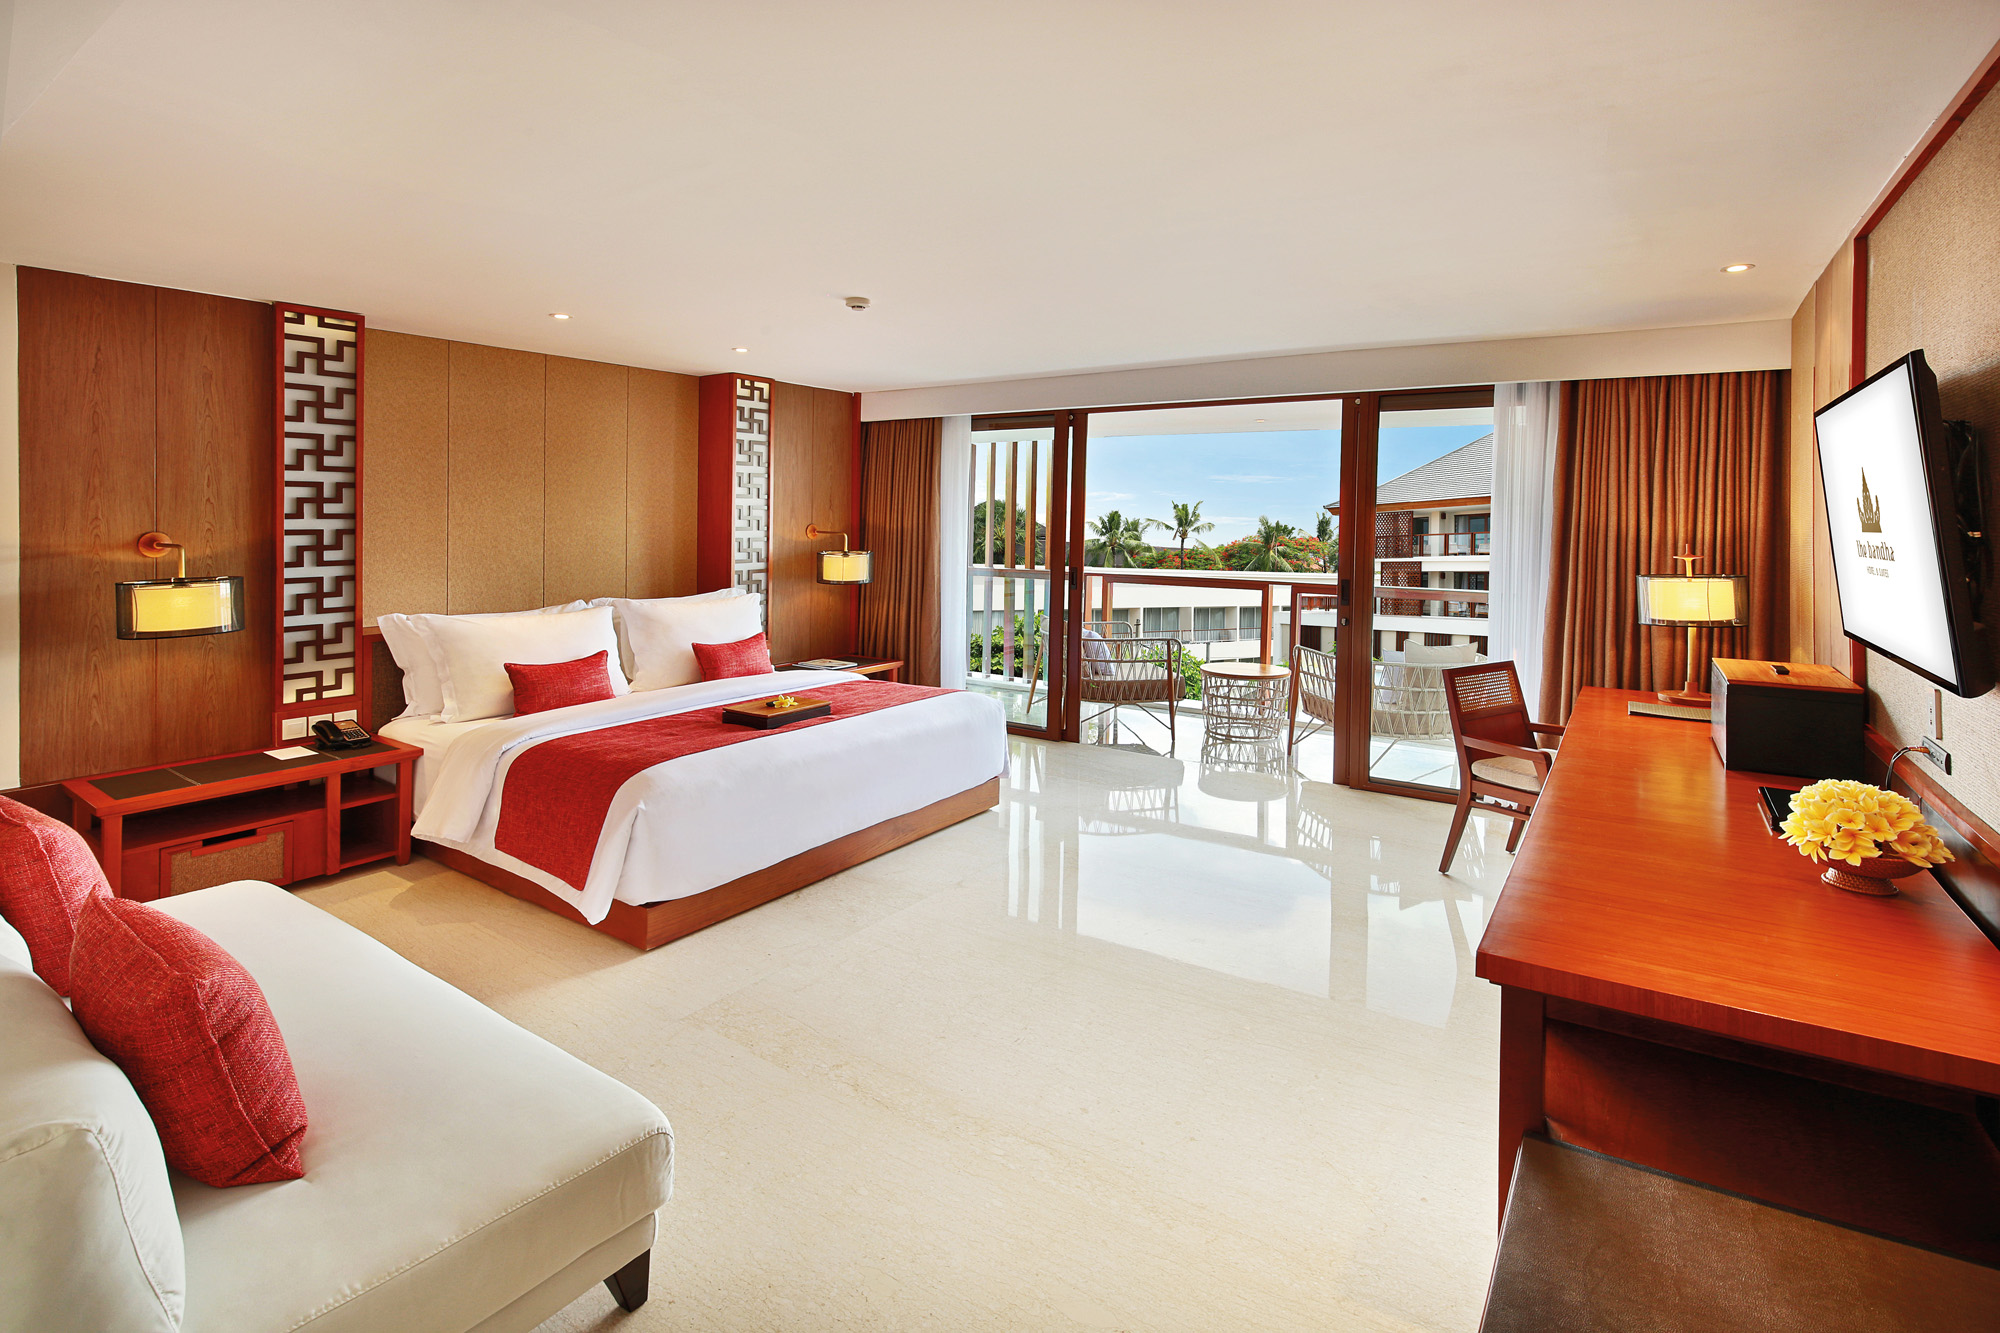 NIT - THE BANDHA HOTEL & SUITES OPENS IN LEGIAN